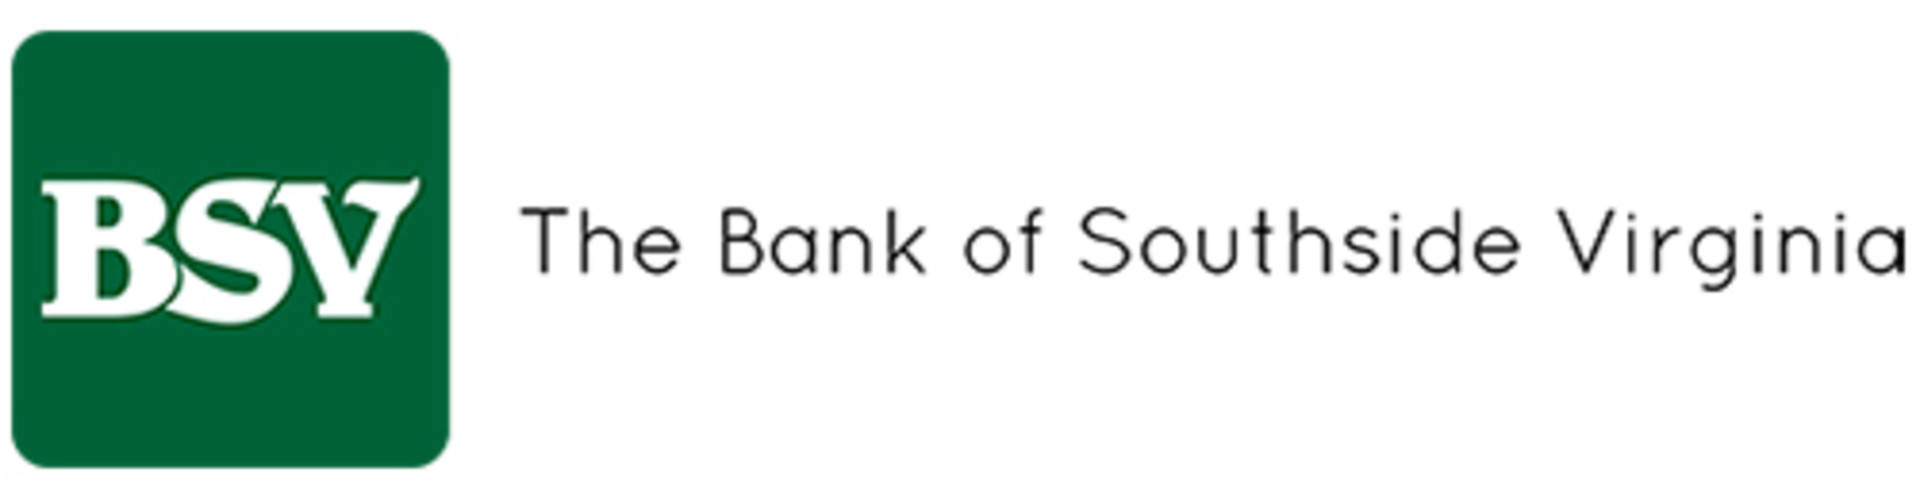 Bank of Southside Virginia Logo